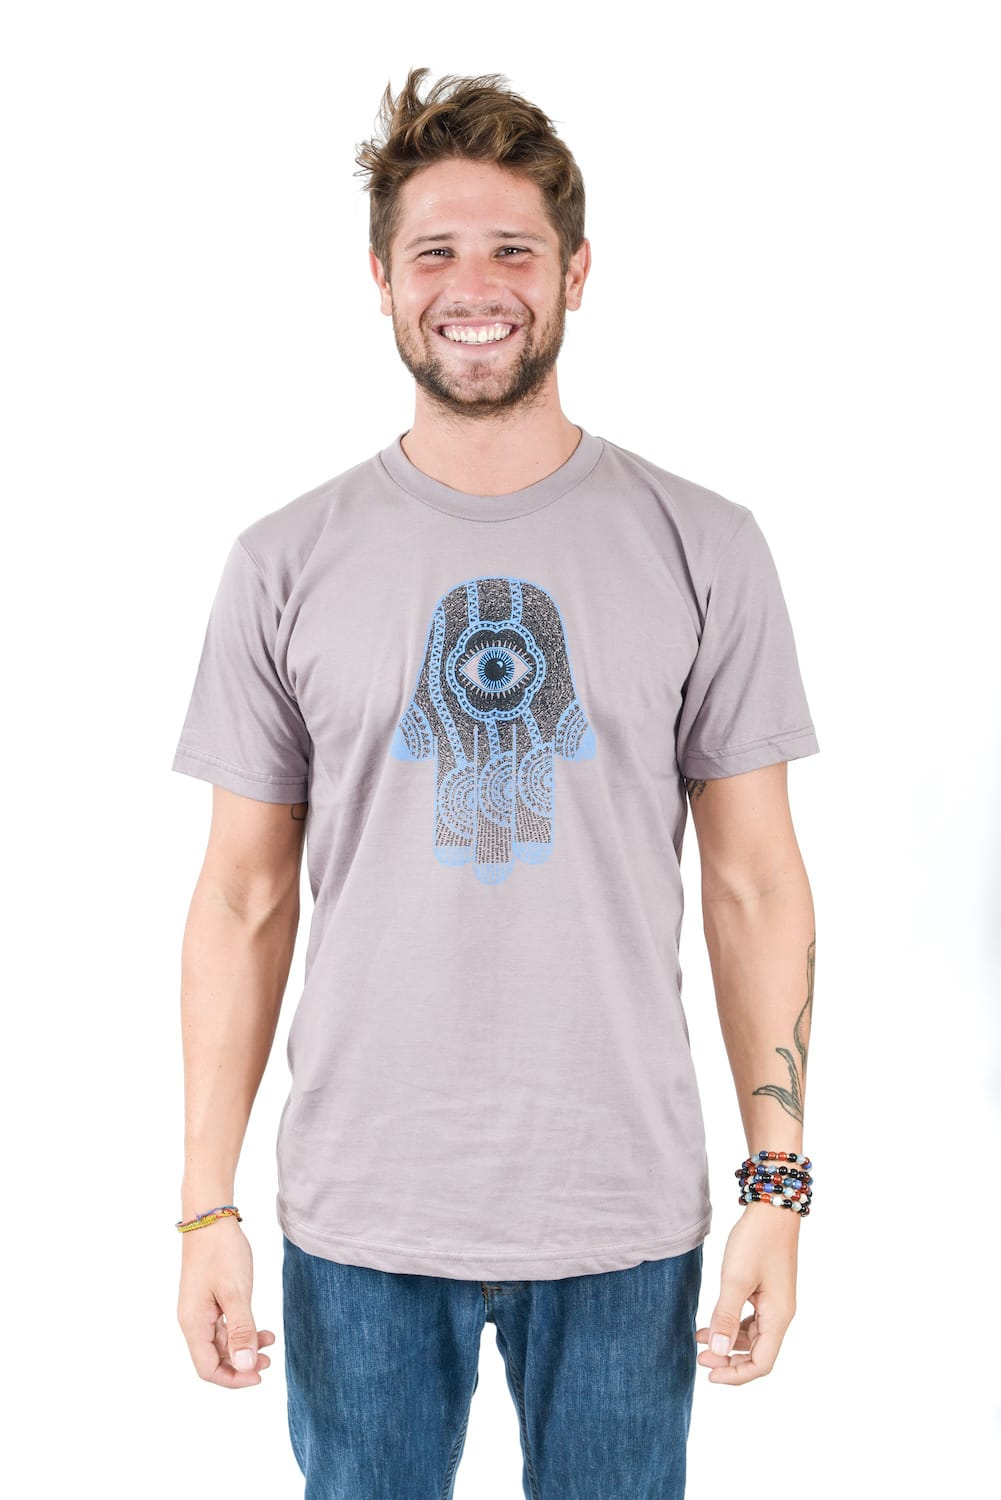 Hamsa_design-blue_on_black_on_men's organic crew neck t-shirt in cinder-Think_Positive_Apparel-WebSm